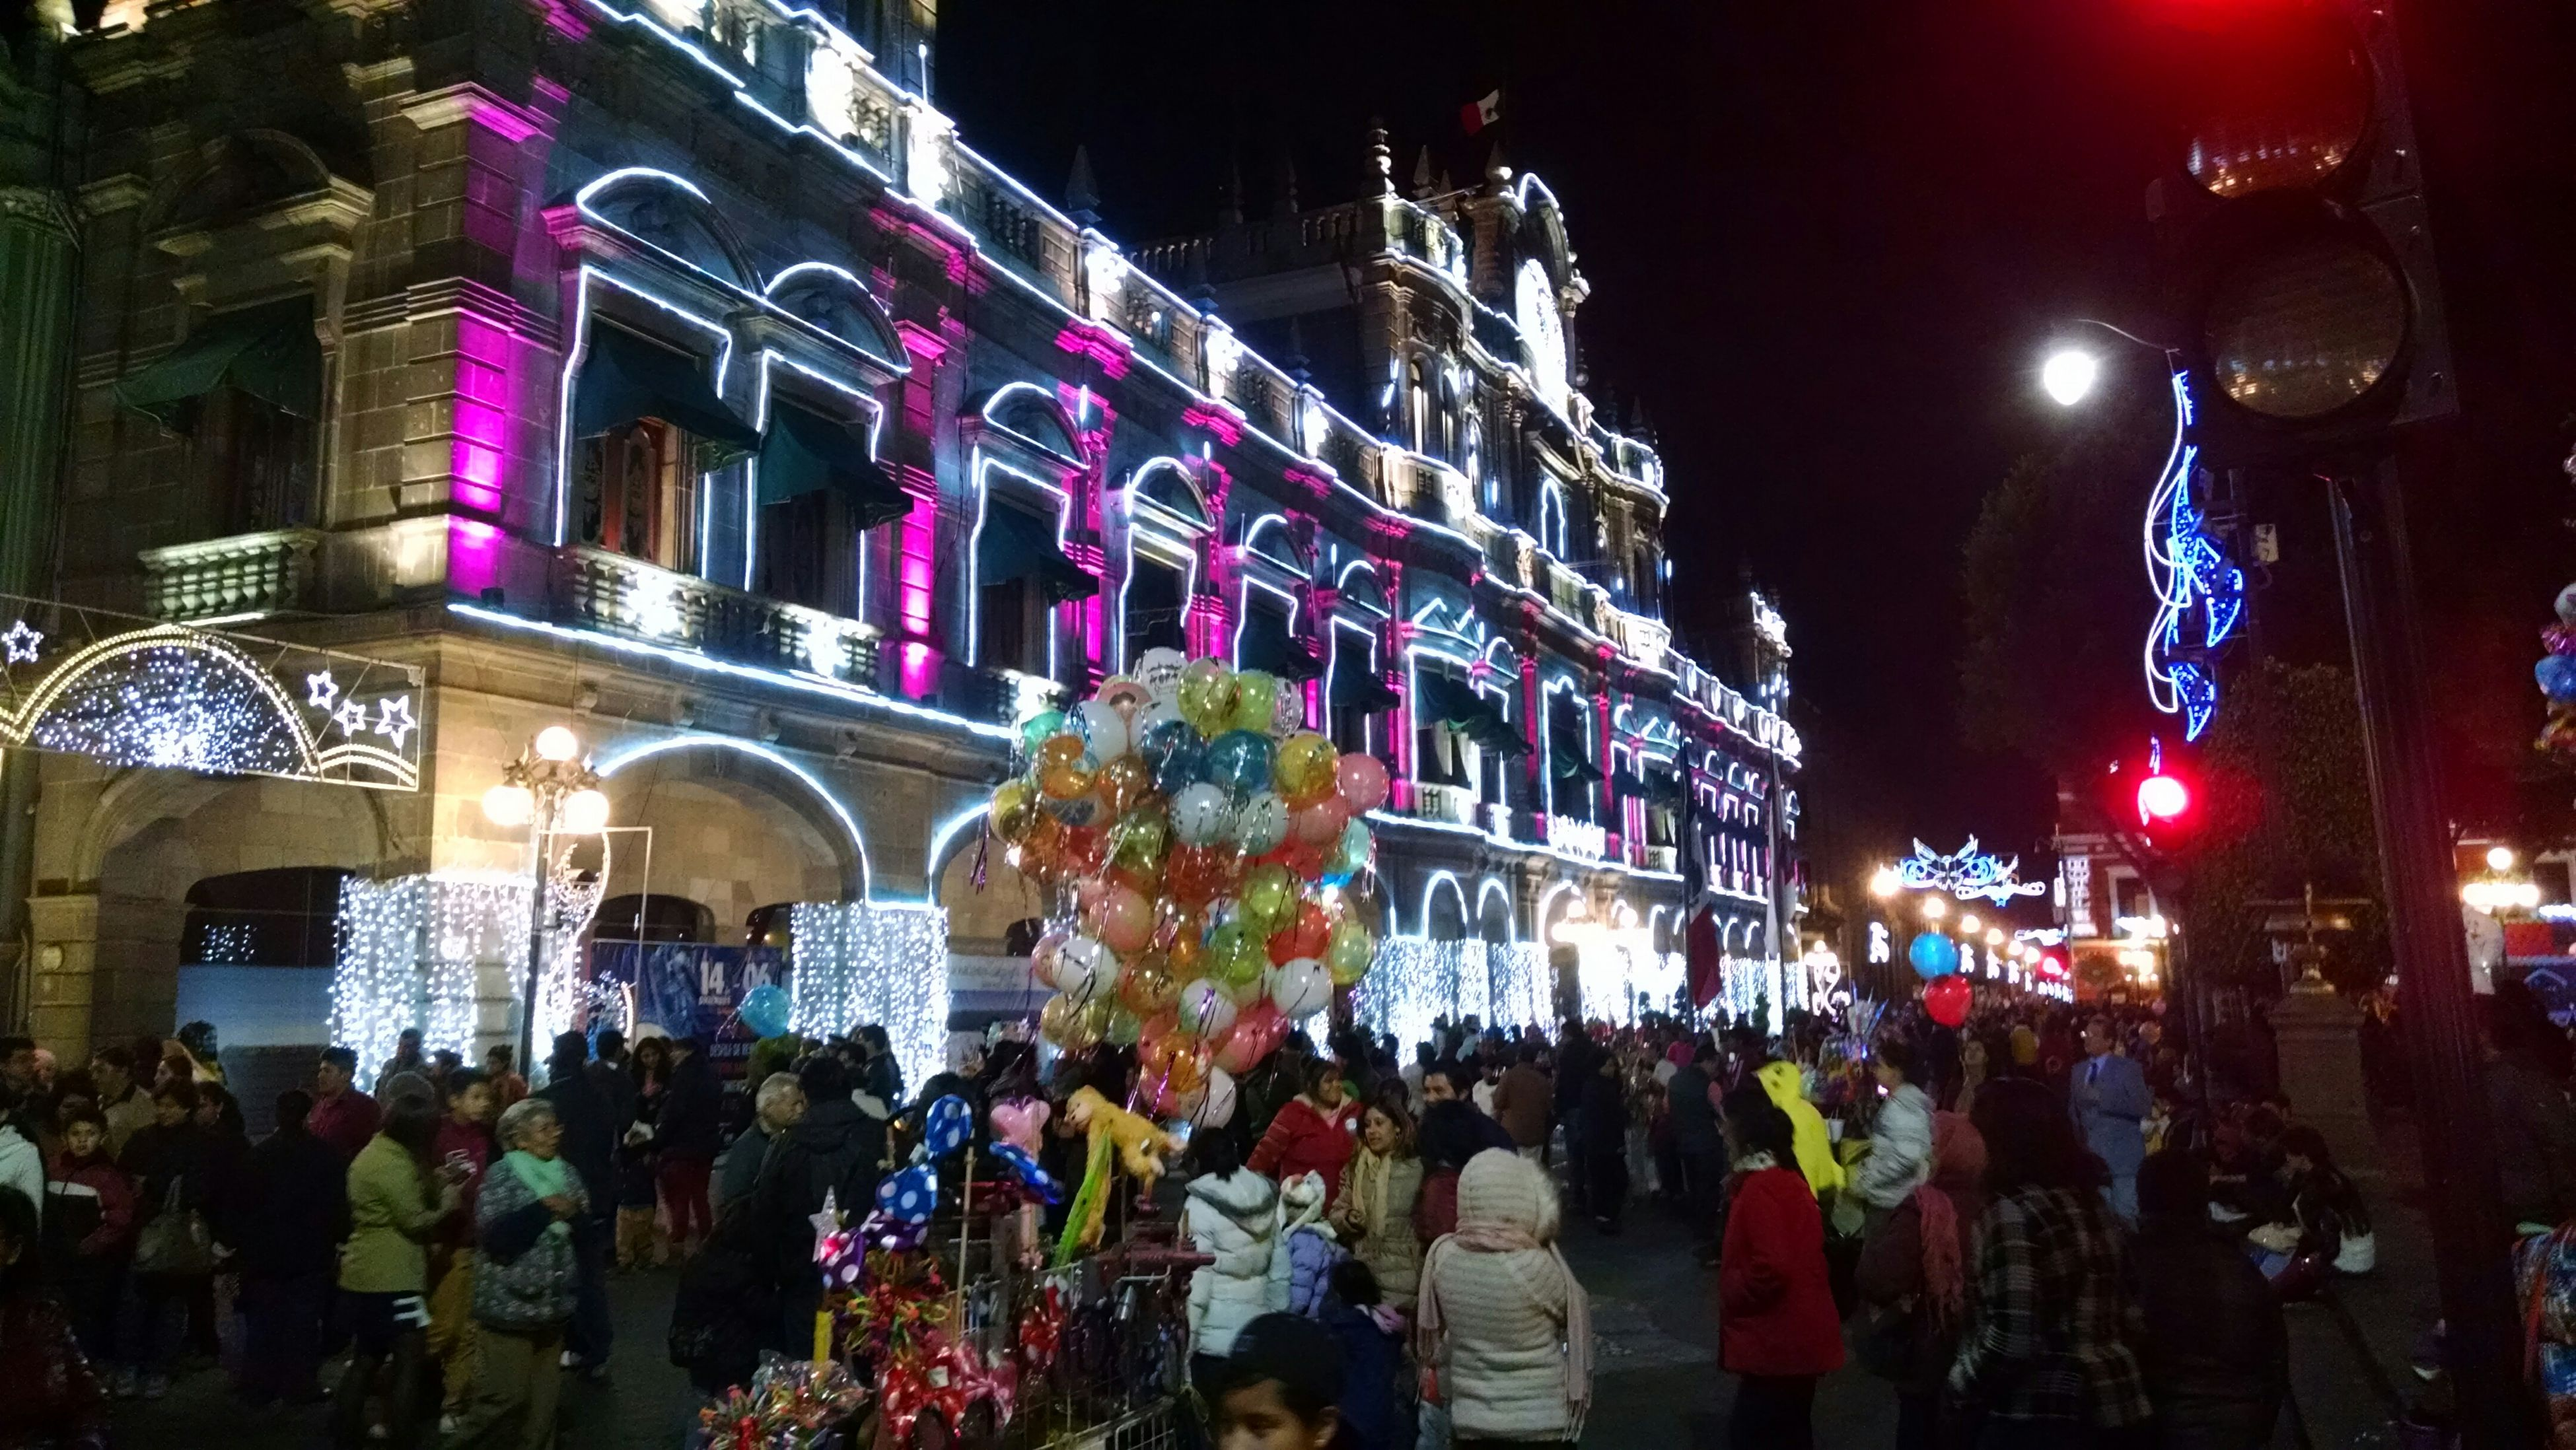 large group of people, illuminated, night, crowd, person, architecture, built structure, building exterior, men, celebration, lifestyles, city, street, city life, lighting equipment, leisure activity, mixed age range, decoration, traditional festival